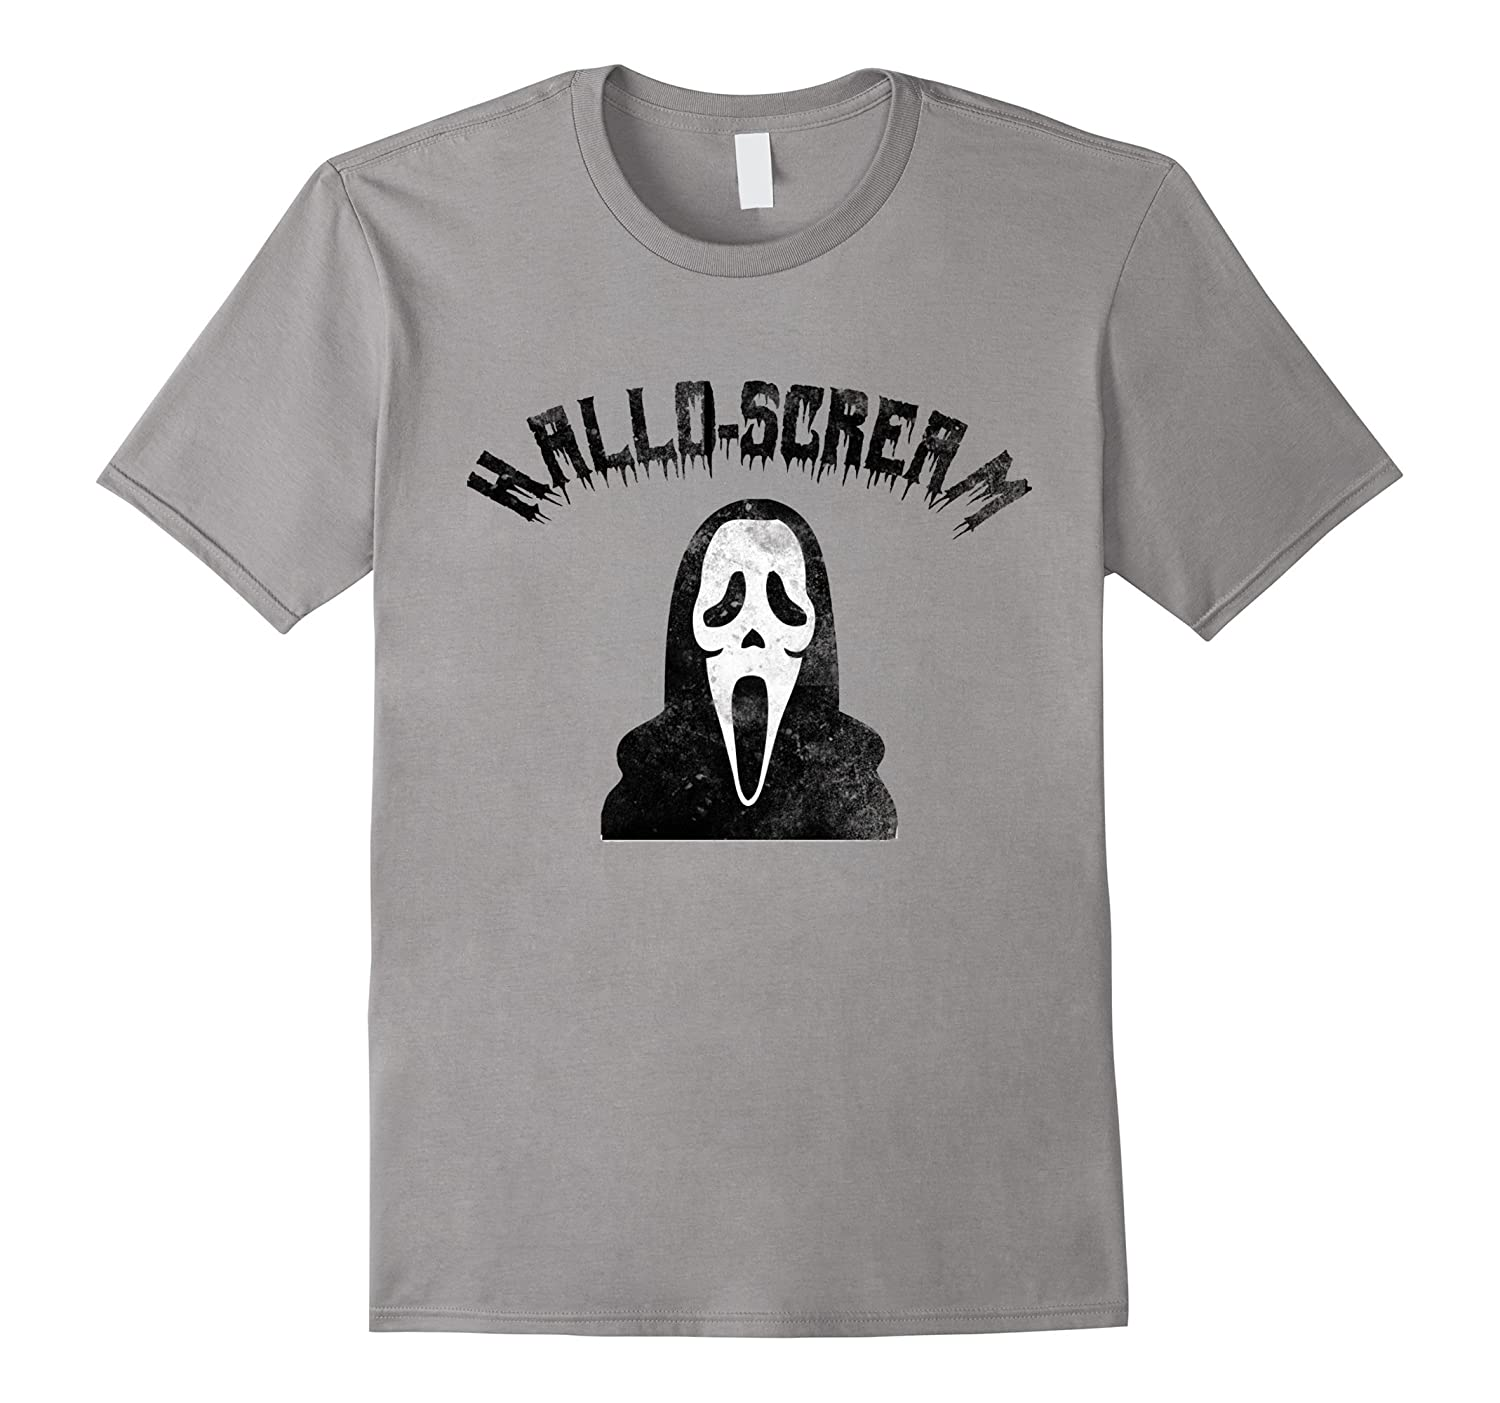 Funny Halloween T-Shirt Hallo-Scream For Trick-or-Treaters-FL